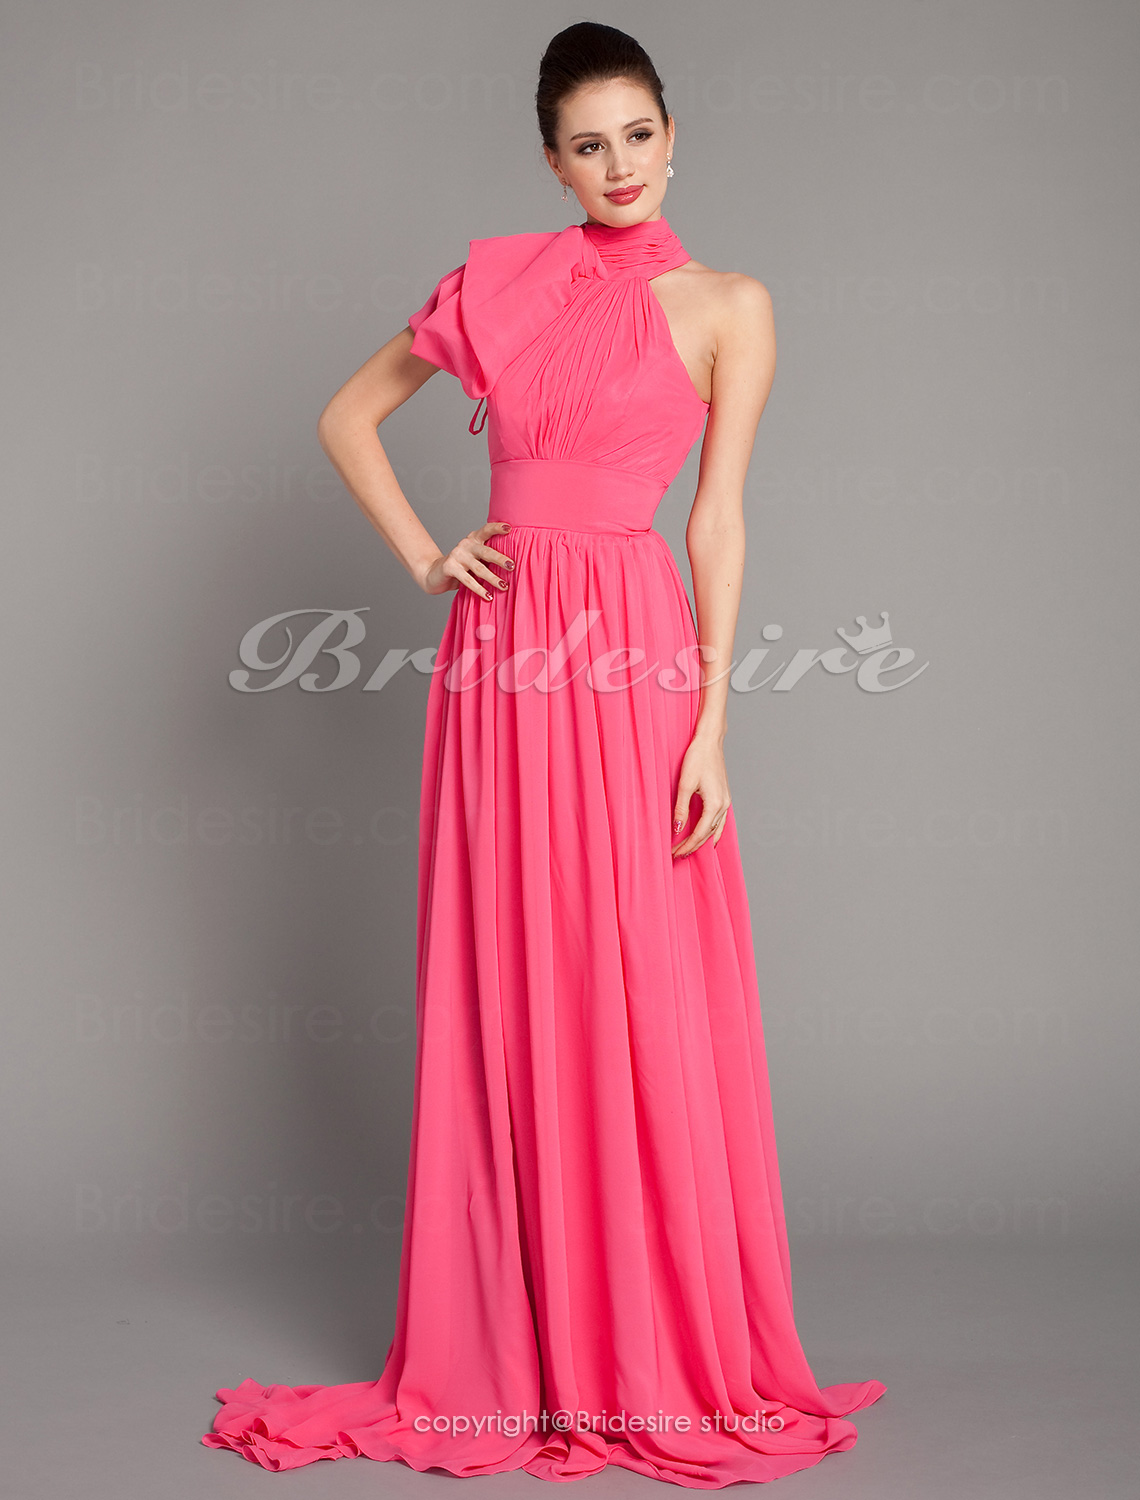 A-line Chiffon High Neck Court Train Evening Dress inspired by Emma Stone at the 84th Oscar